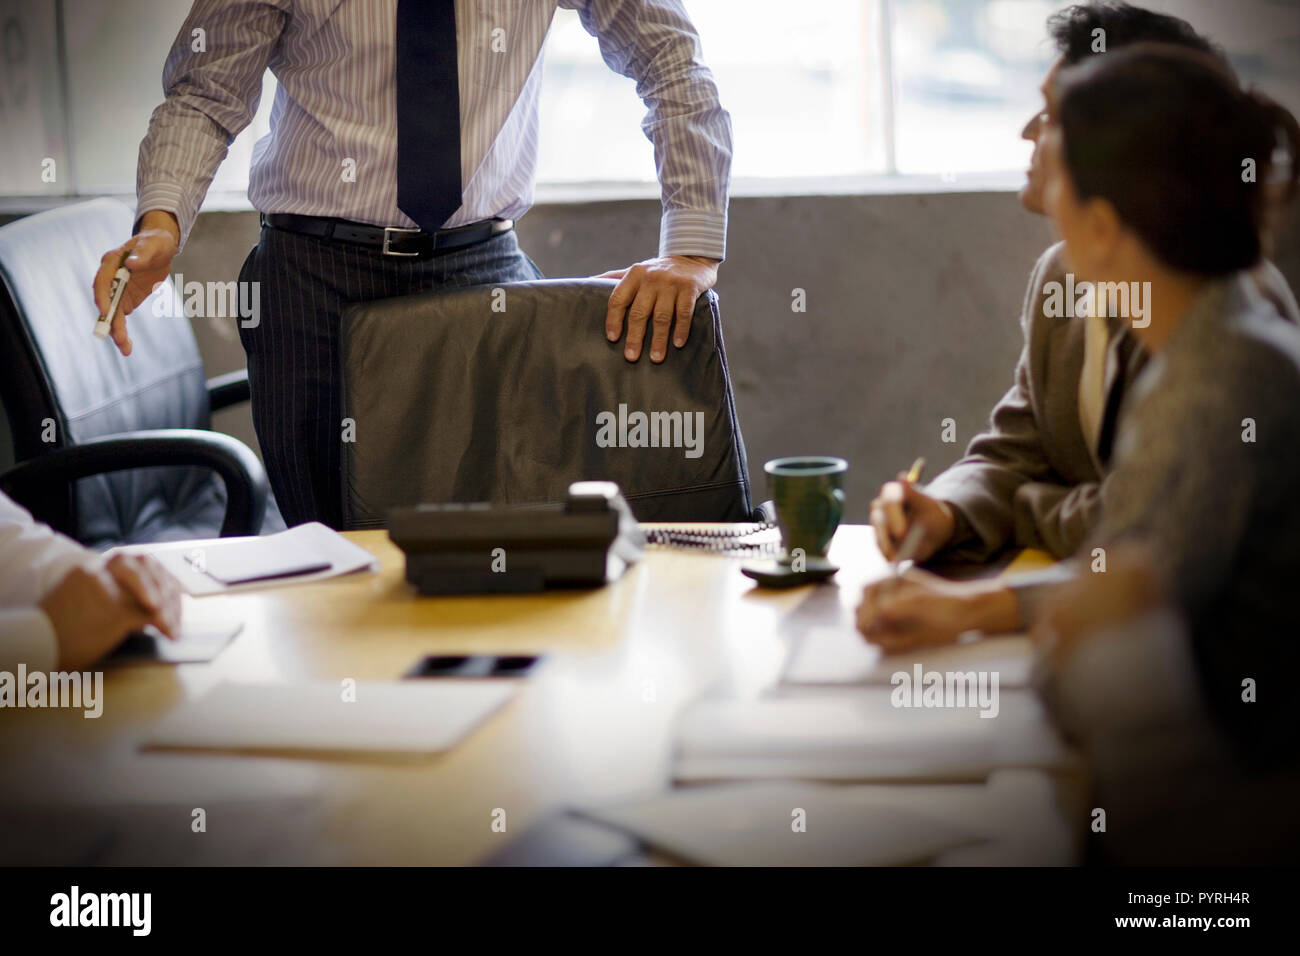 Group of business people sitting in a boardroom. - Stock Image